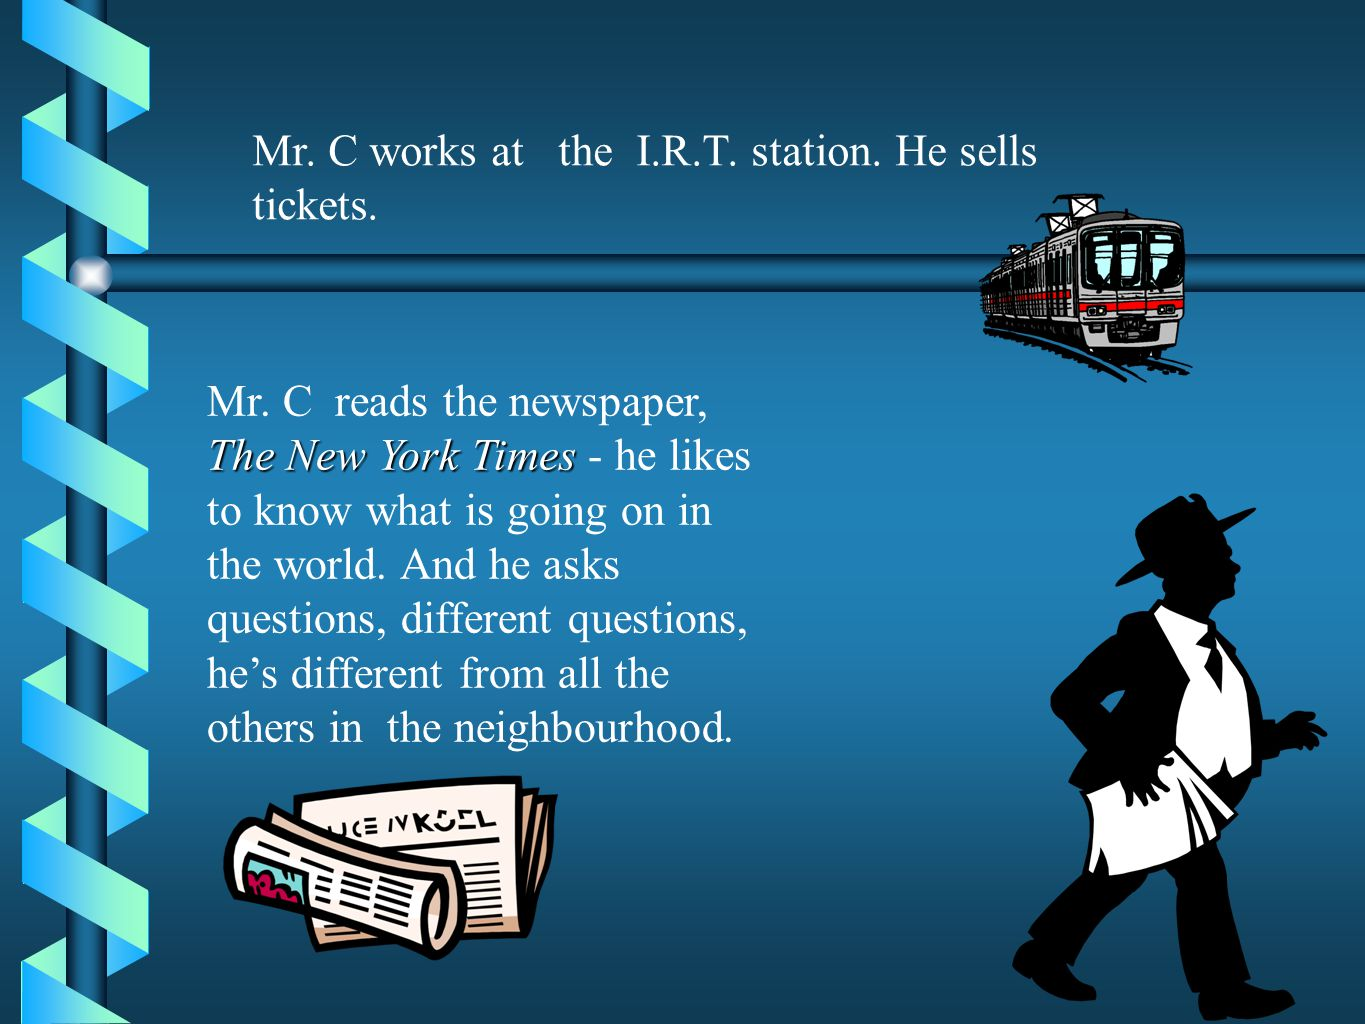 Mr. C works at the I.R.T. station. He sells tickets.